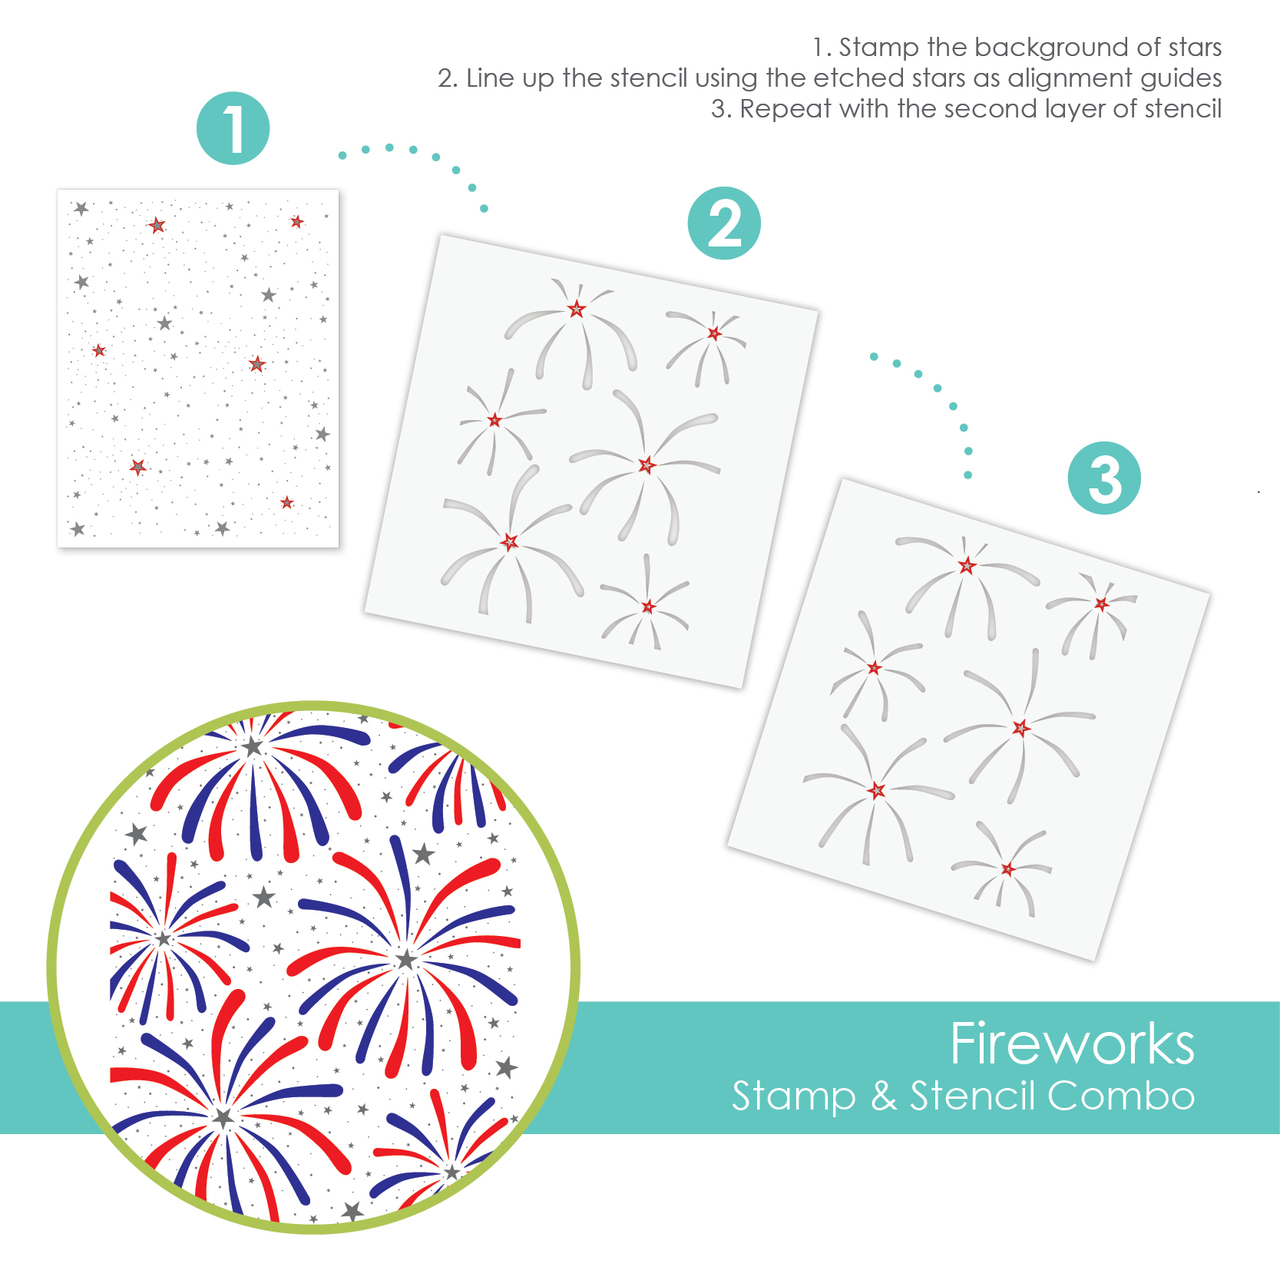 *NEW* - Taylored Expression - FIREWORKS STAMP & STENCIL COMBO